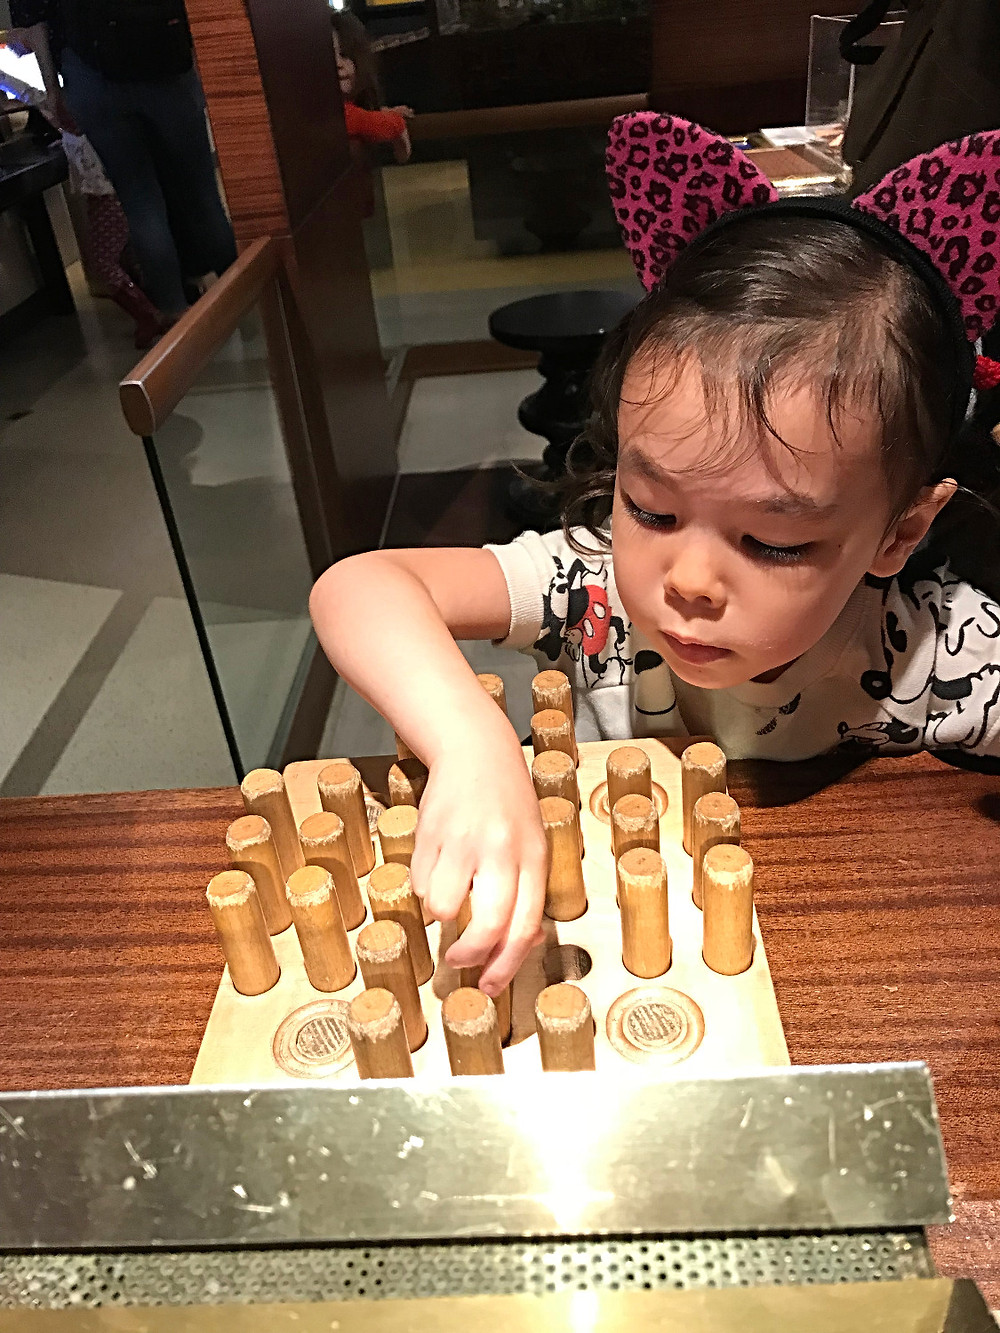 MoMath, The National Museum of Mathematics, children's museum, STEM fo kids, STEAM for kids, things to do this summer, nyc kids, nyc summer, curious g and me, patience puzzle